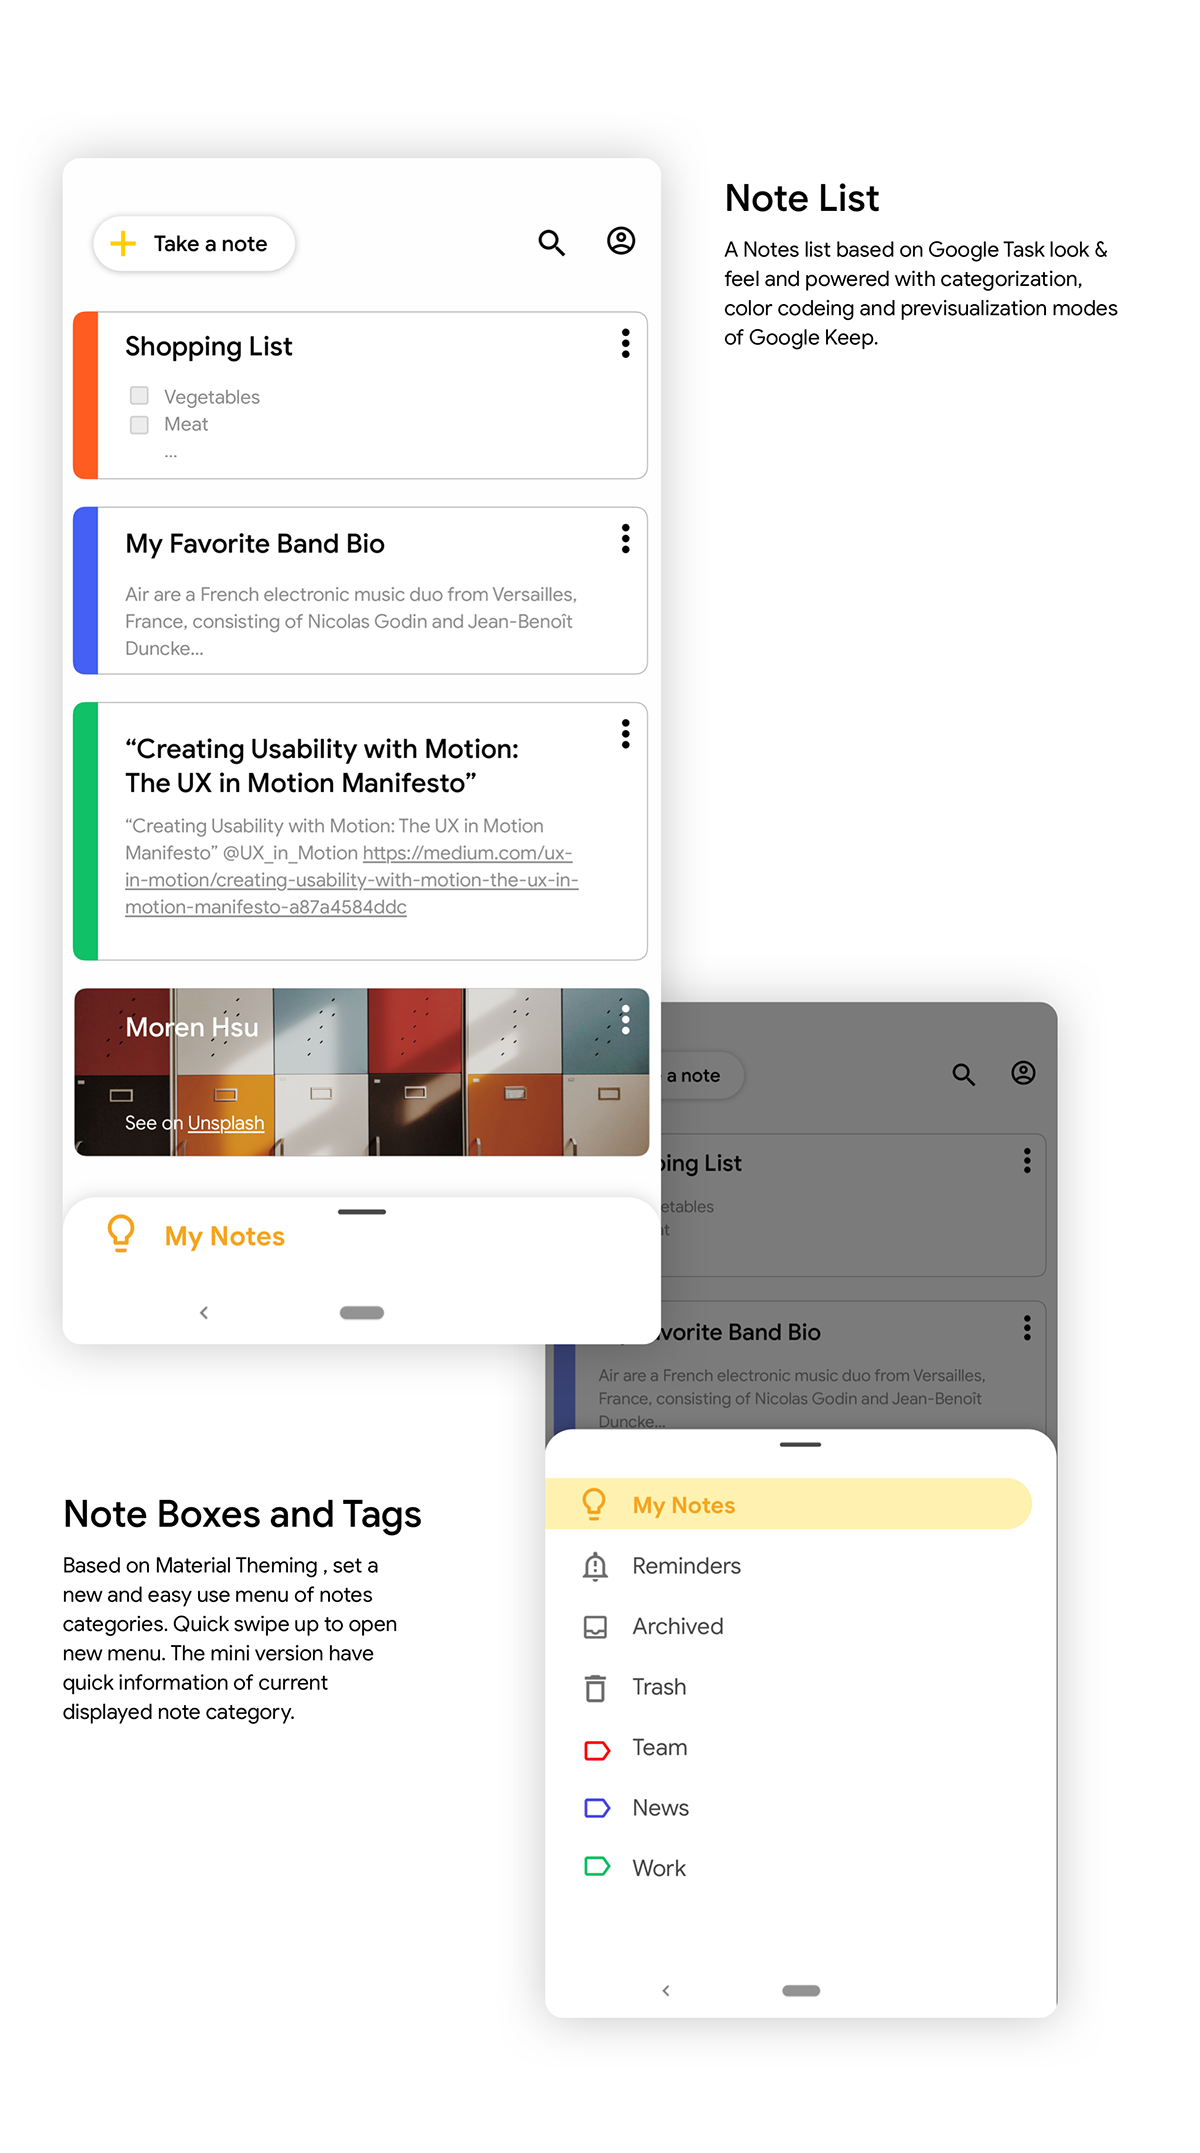 Google Keep Concept on Pantone Canvas Gallery